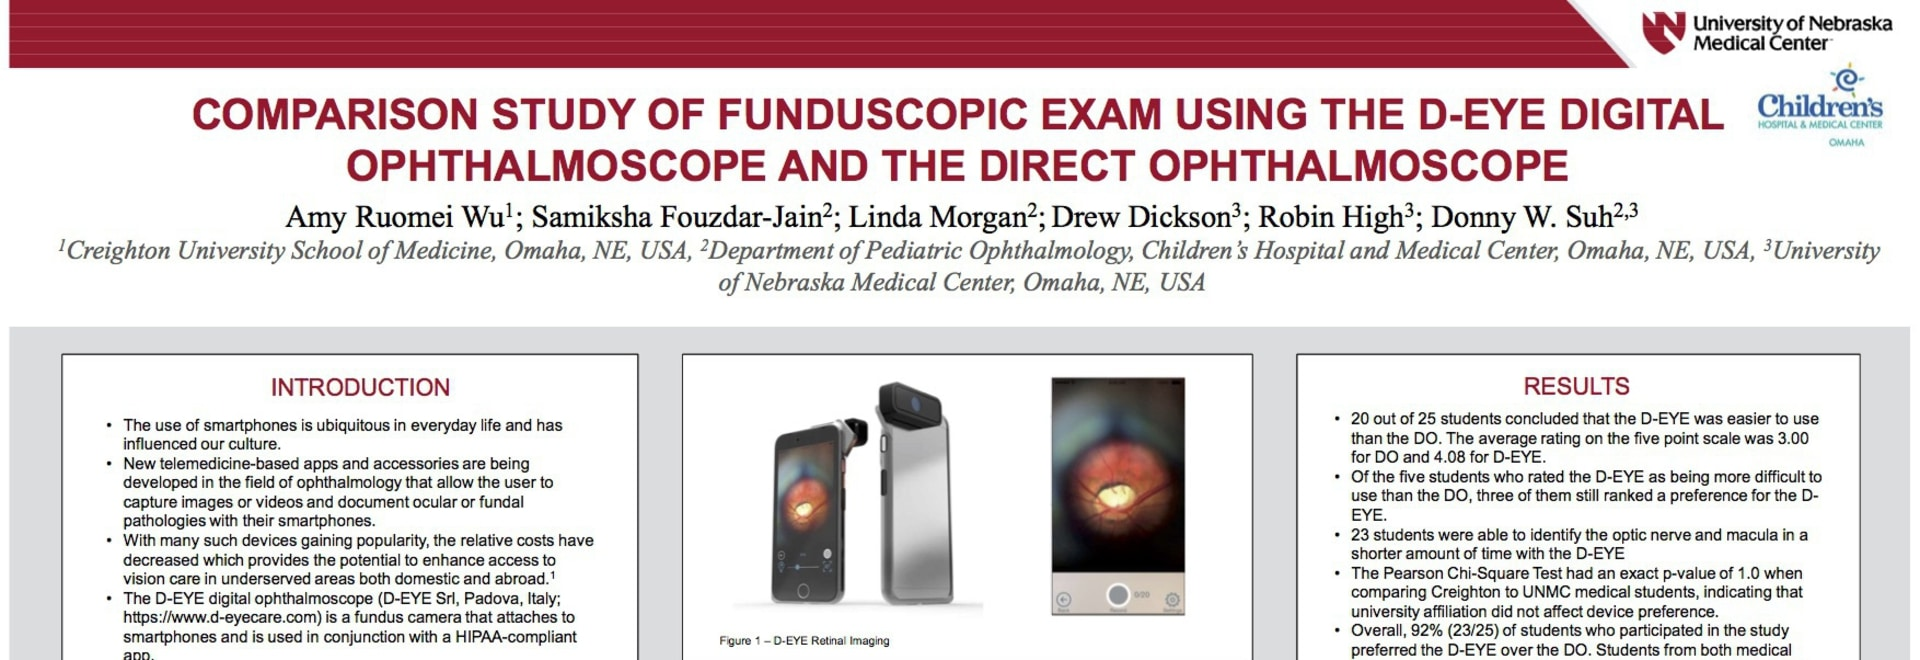 Comparison Study of Fundoscopic Exam Using the D-EYE Digital Ophthalmoscope and the Direct Ophthalmoscope